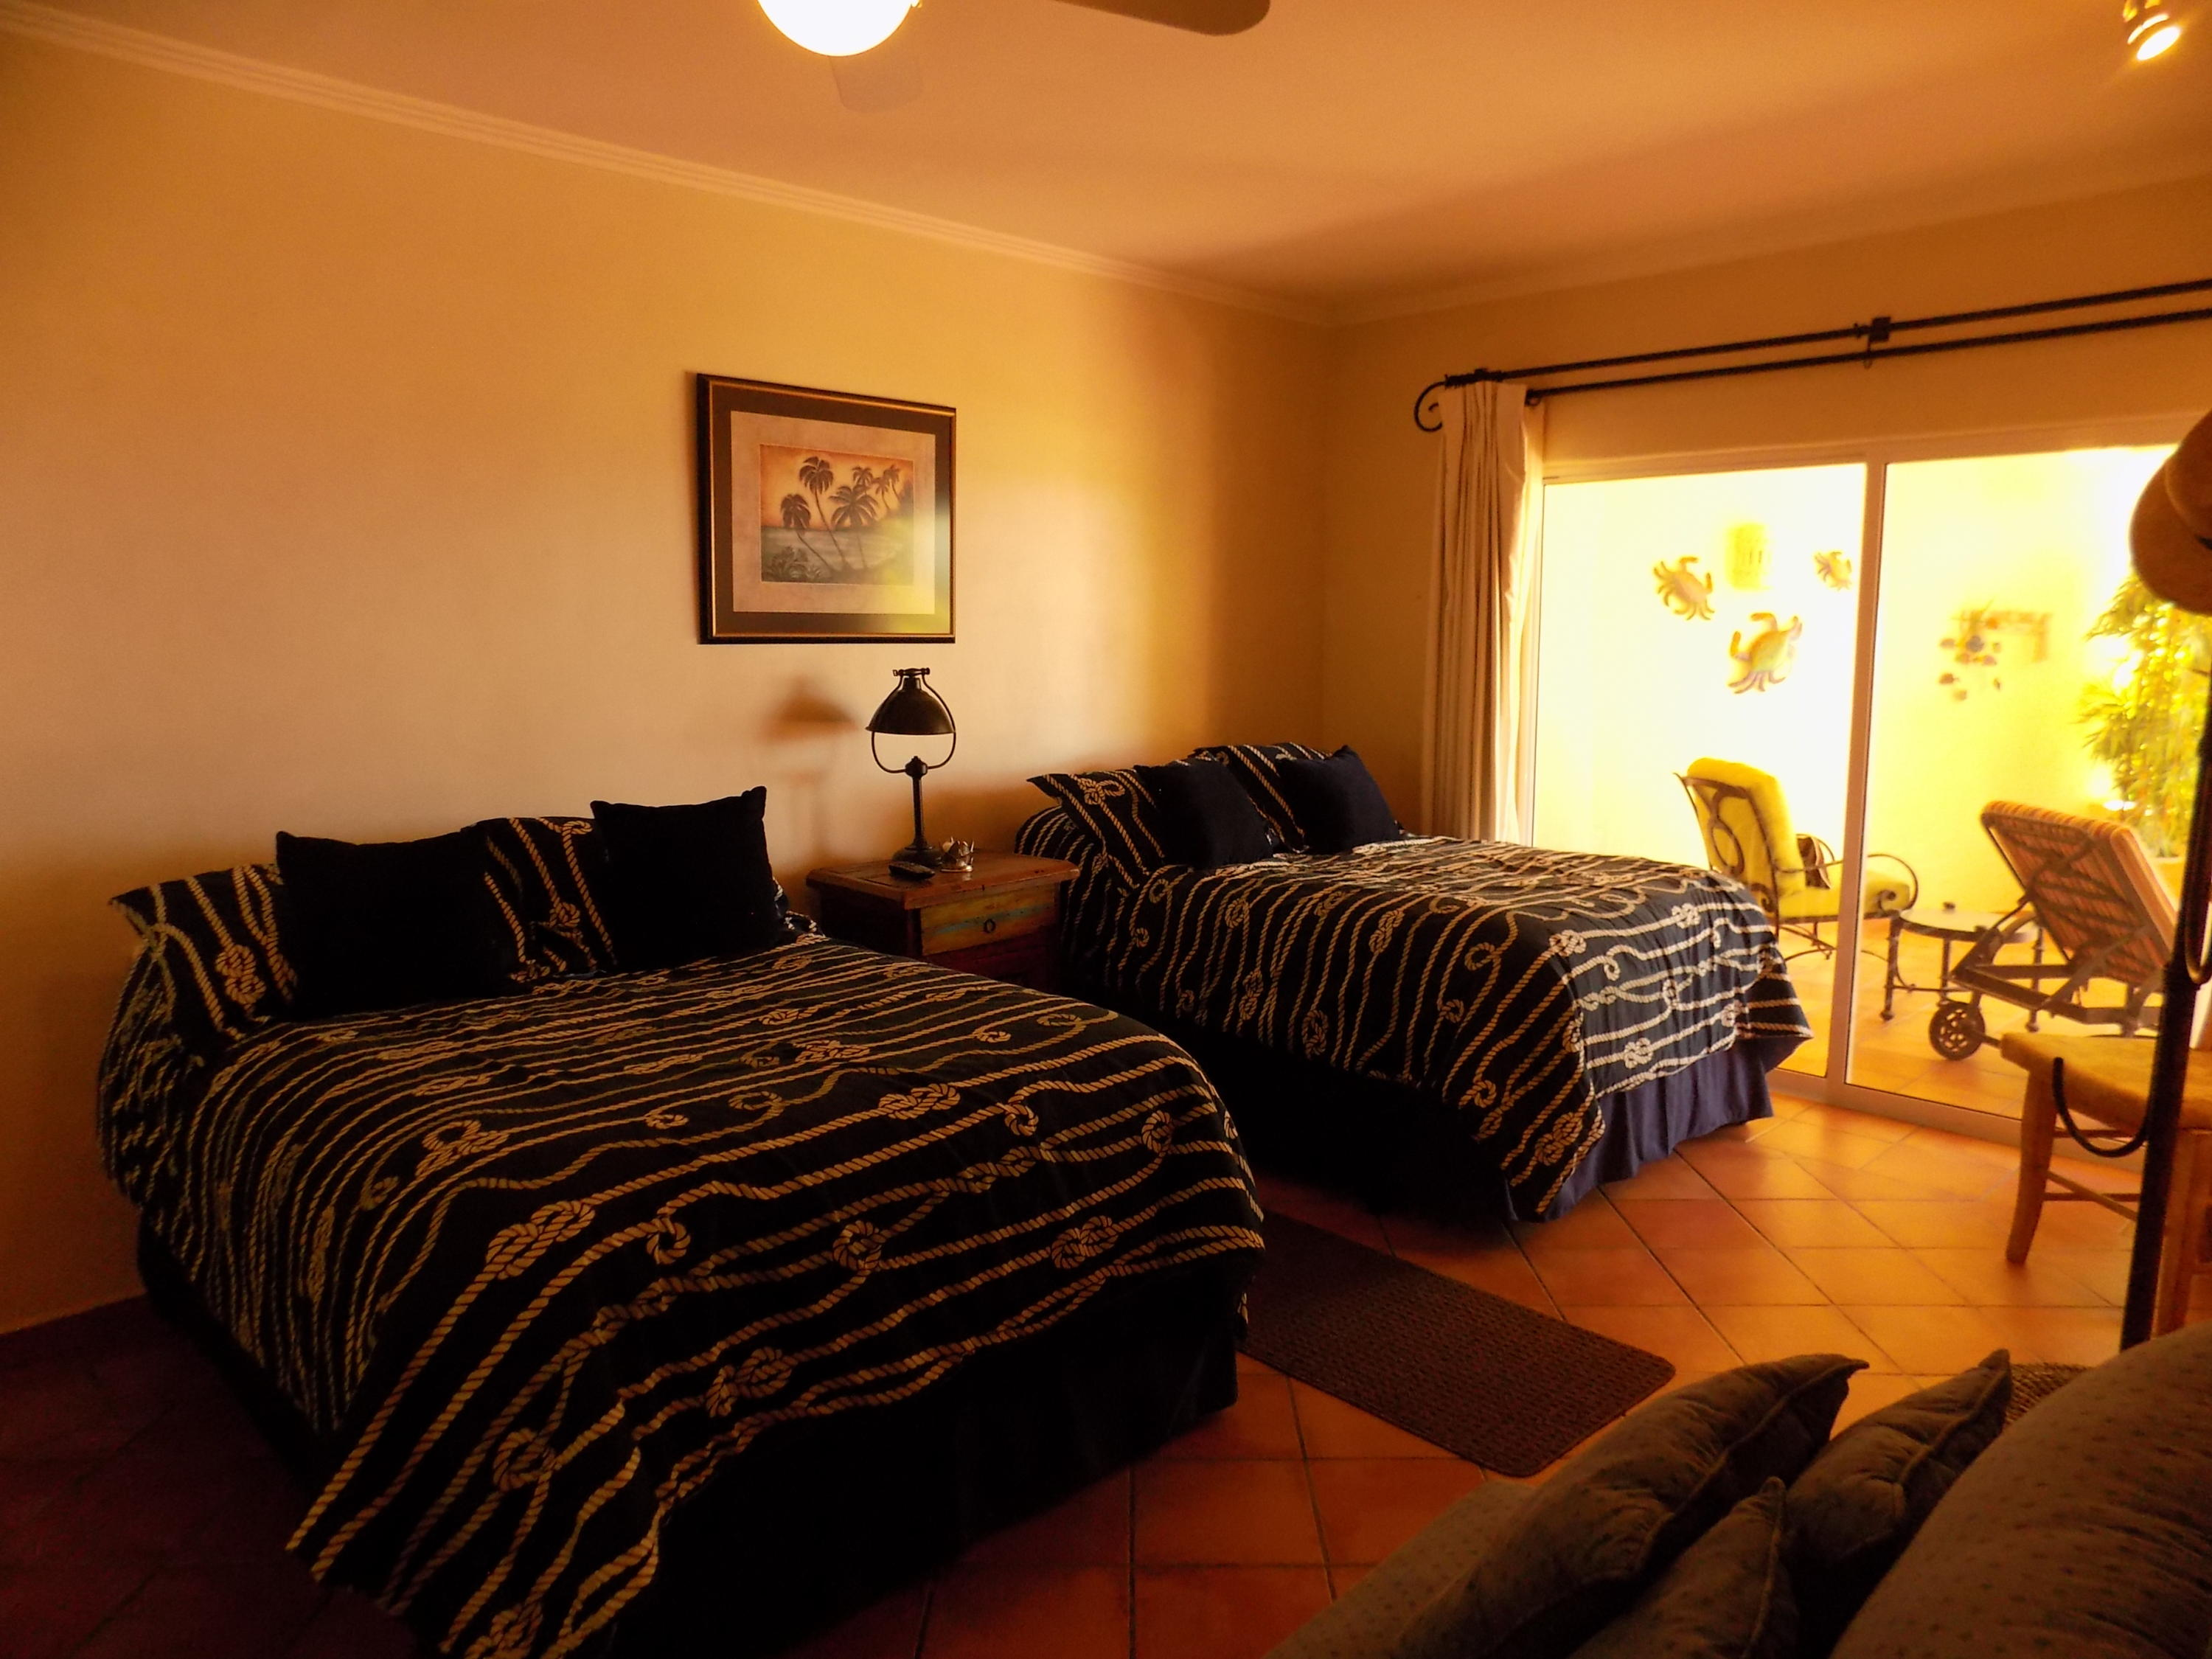 San Jose del Cabo, 3 Bedrooms Bedrooms, 7 Rooms Rooms,3 BathroomsBathrooms,Condo,For Sale,Paseo San Jose,19-1375